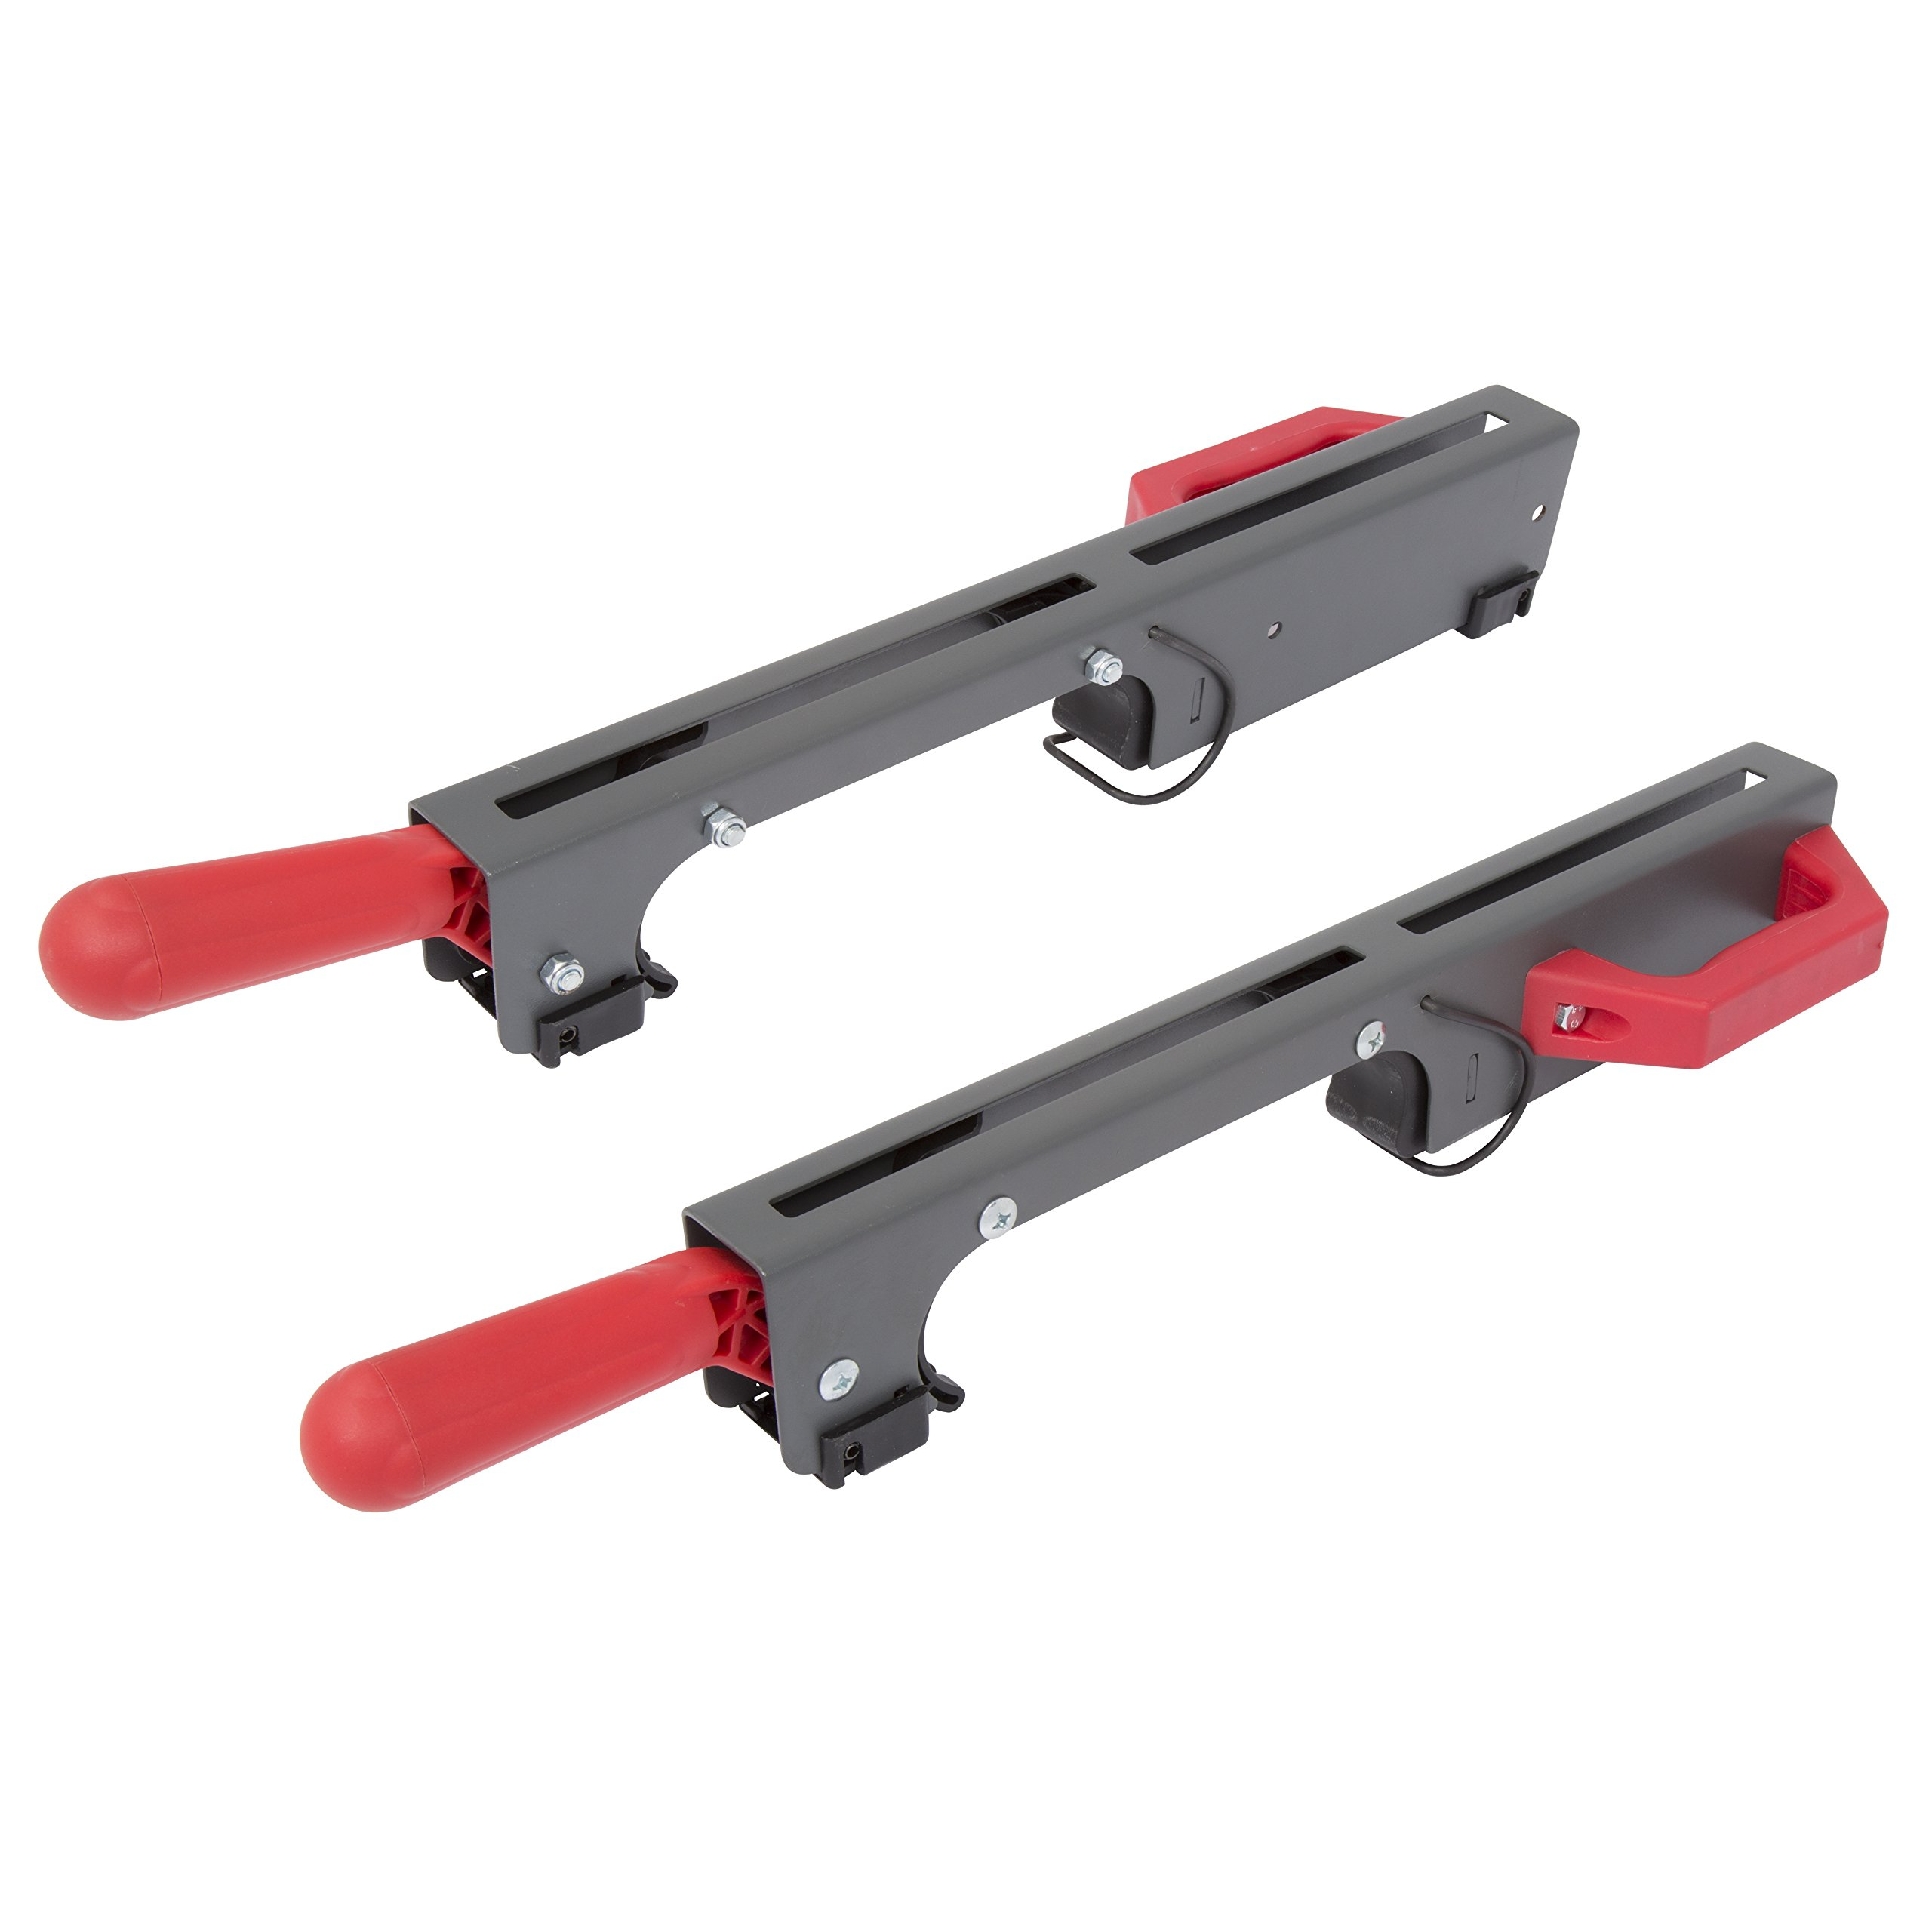 PROTOCOL Equipment 67111 Additional Tool and Accessory Mount Bracket